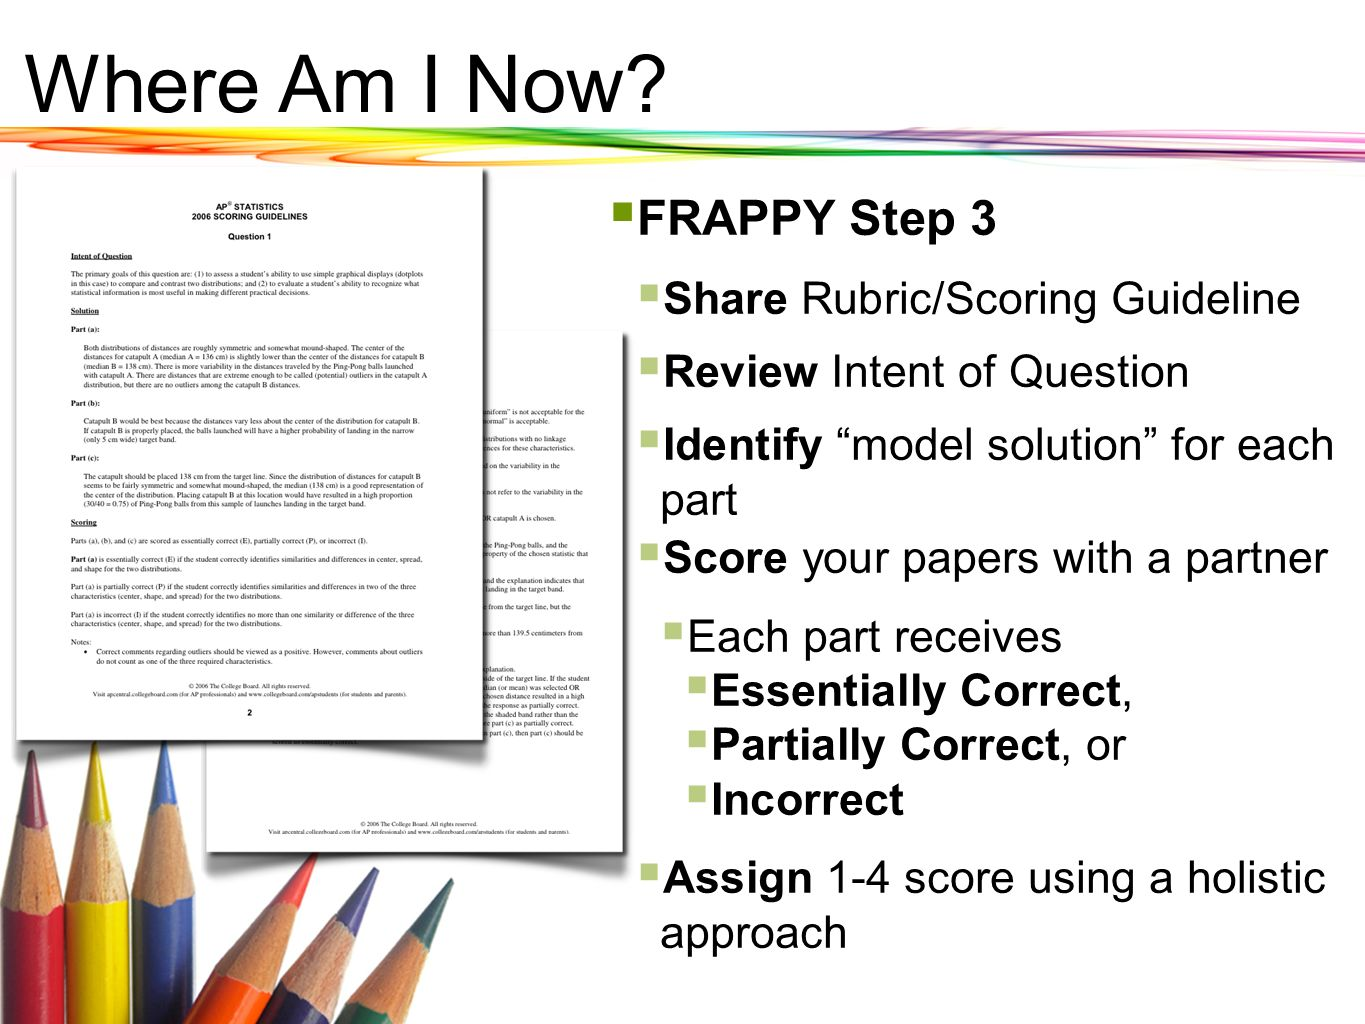 Where Am I Now FRAPPY Step 3 Share Rubric/Scoring Guideline